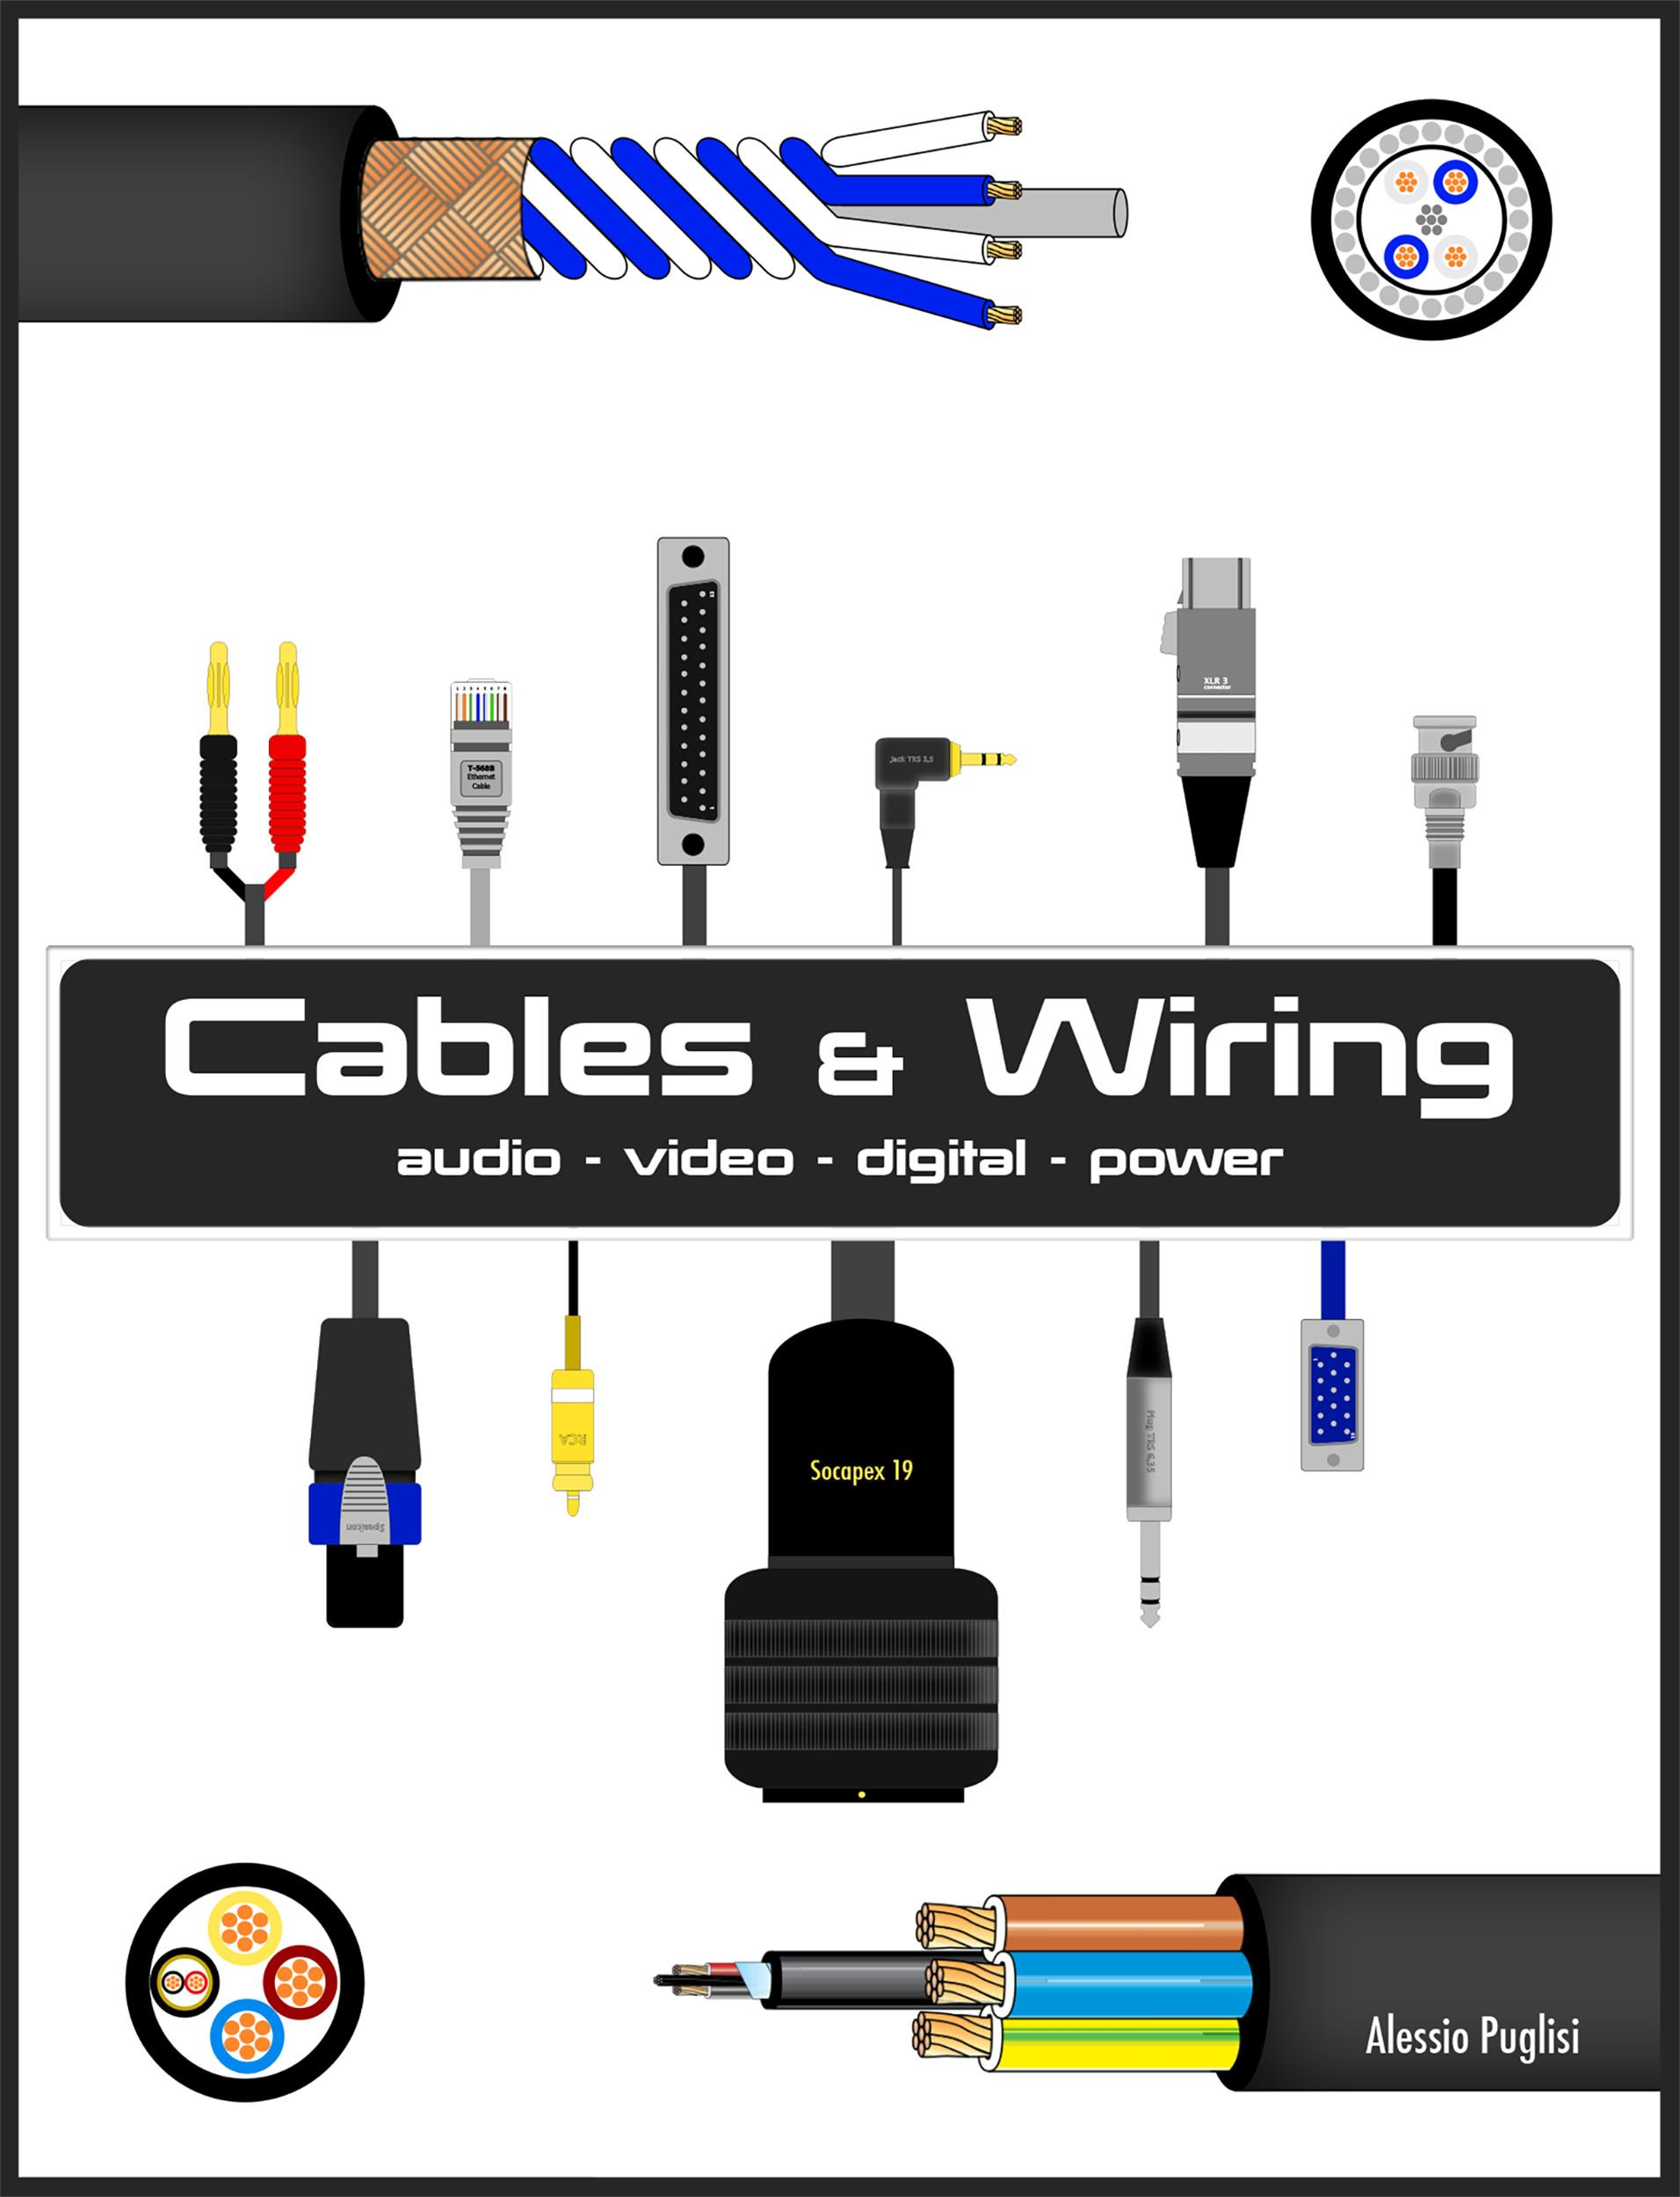 Cables & Wiring